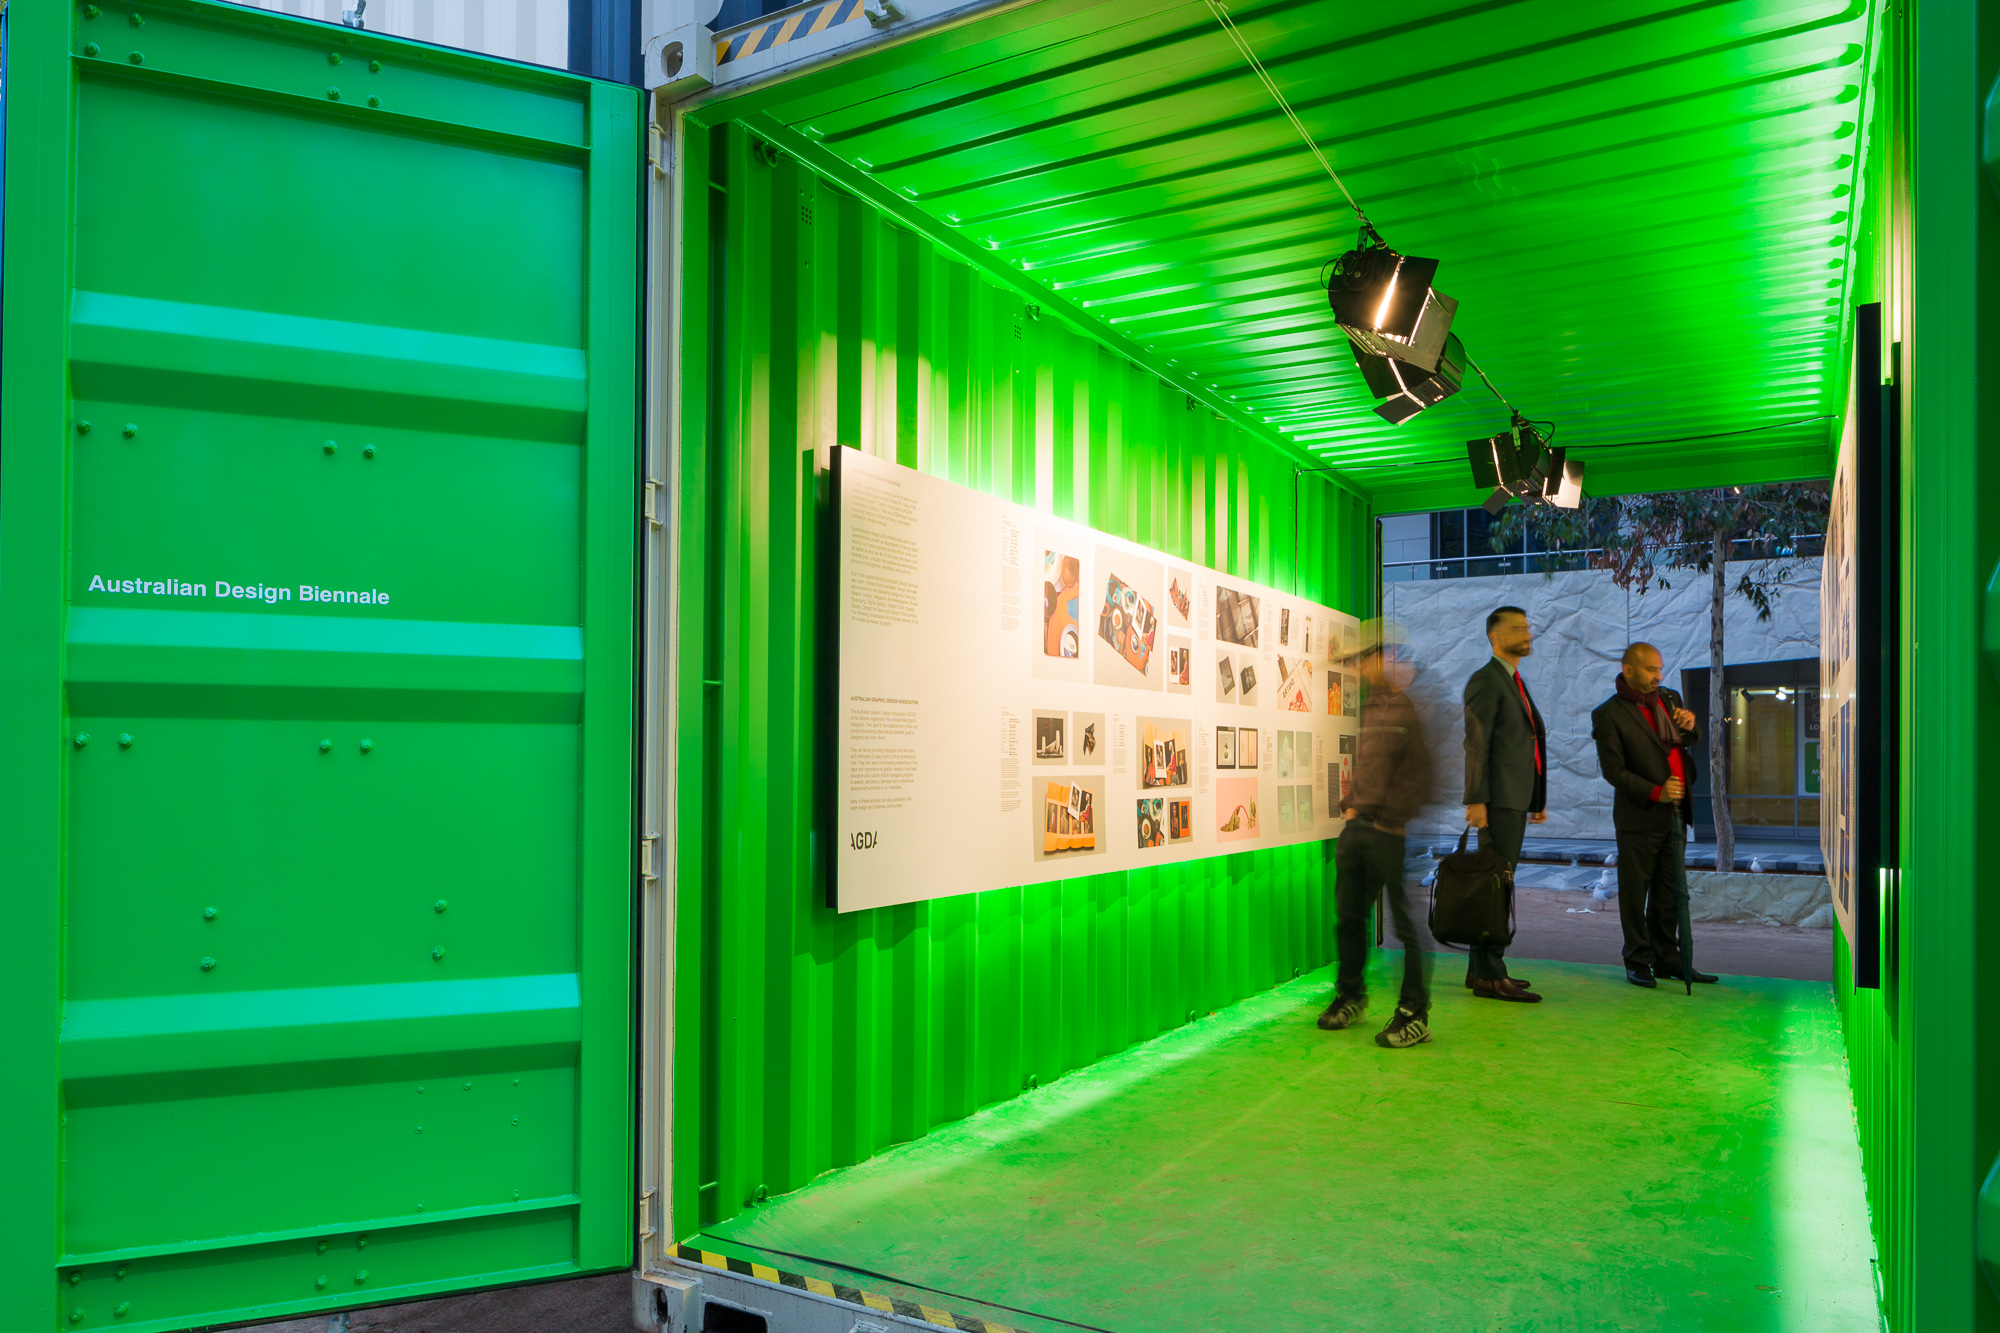 MIDW15_city_square_exhibition_with_green_shippling_containers_at_night_photography_by_sarah_anderson